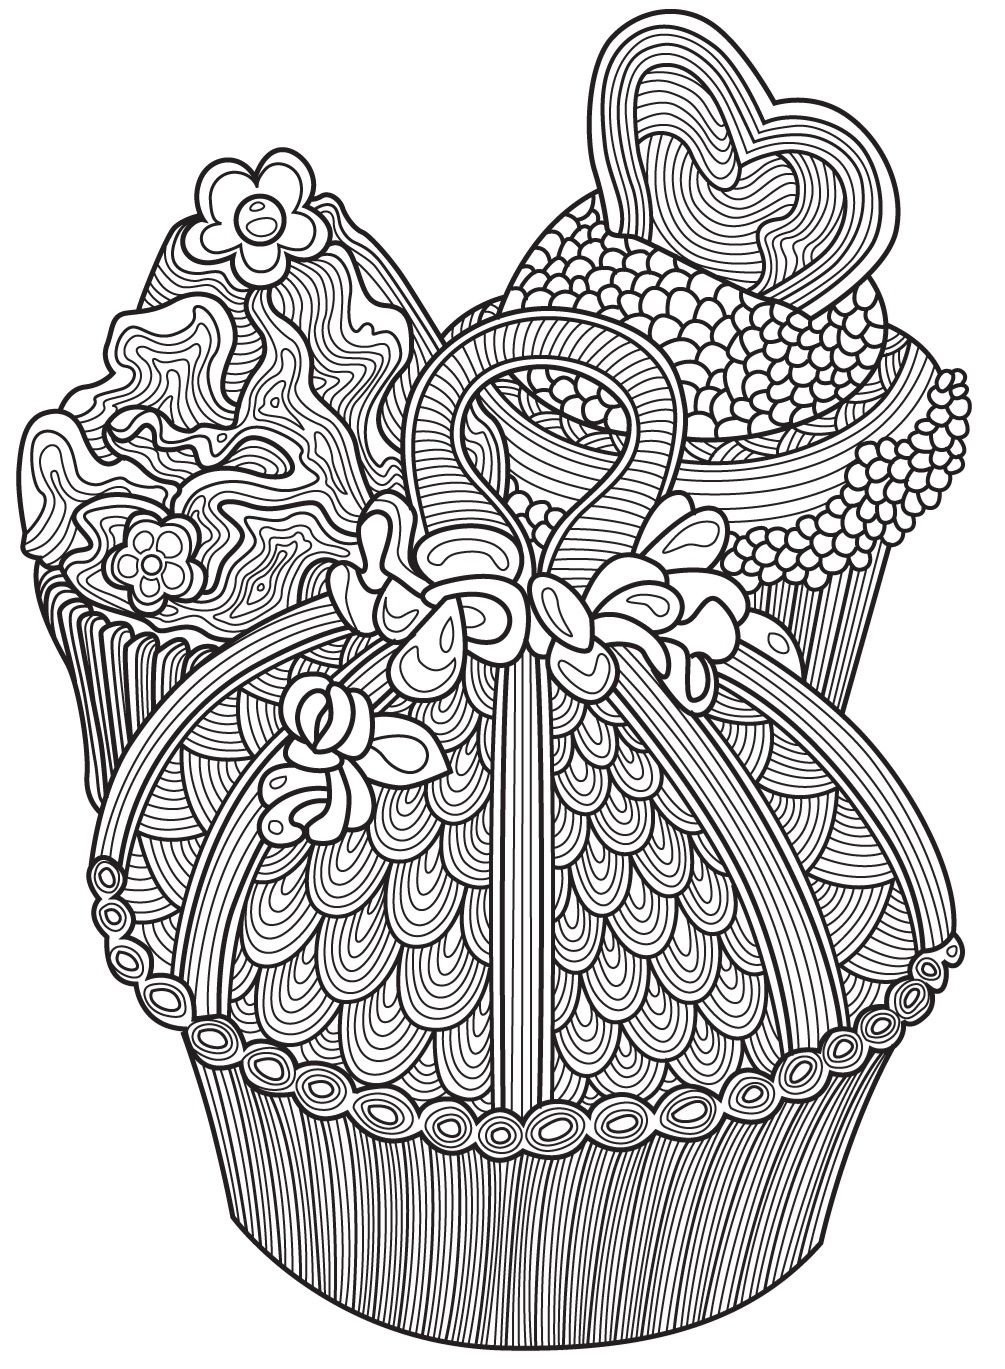 Bliss Sweets Coloring Book Your Passport To Calm 6 Sample